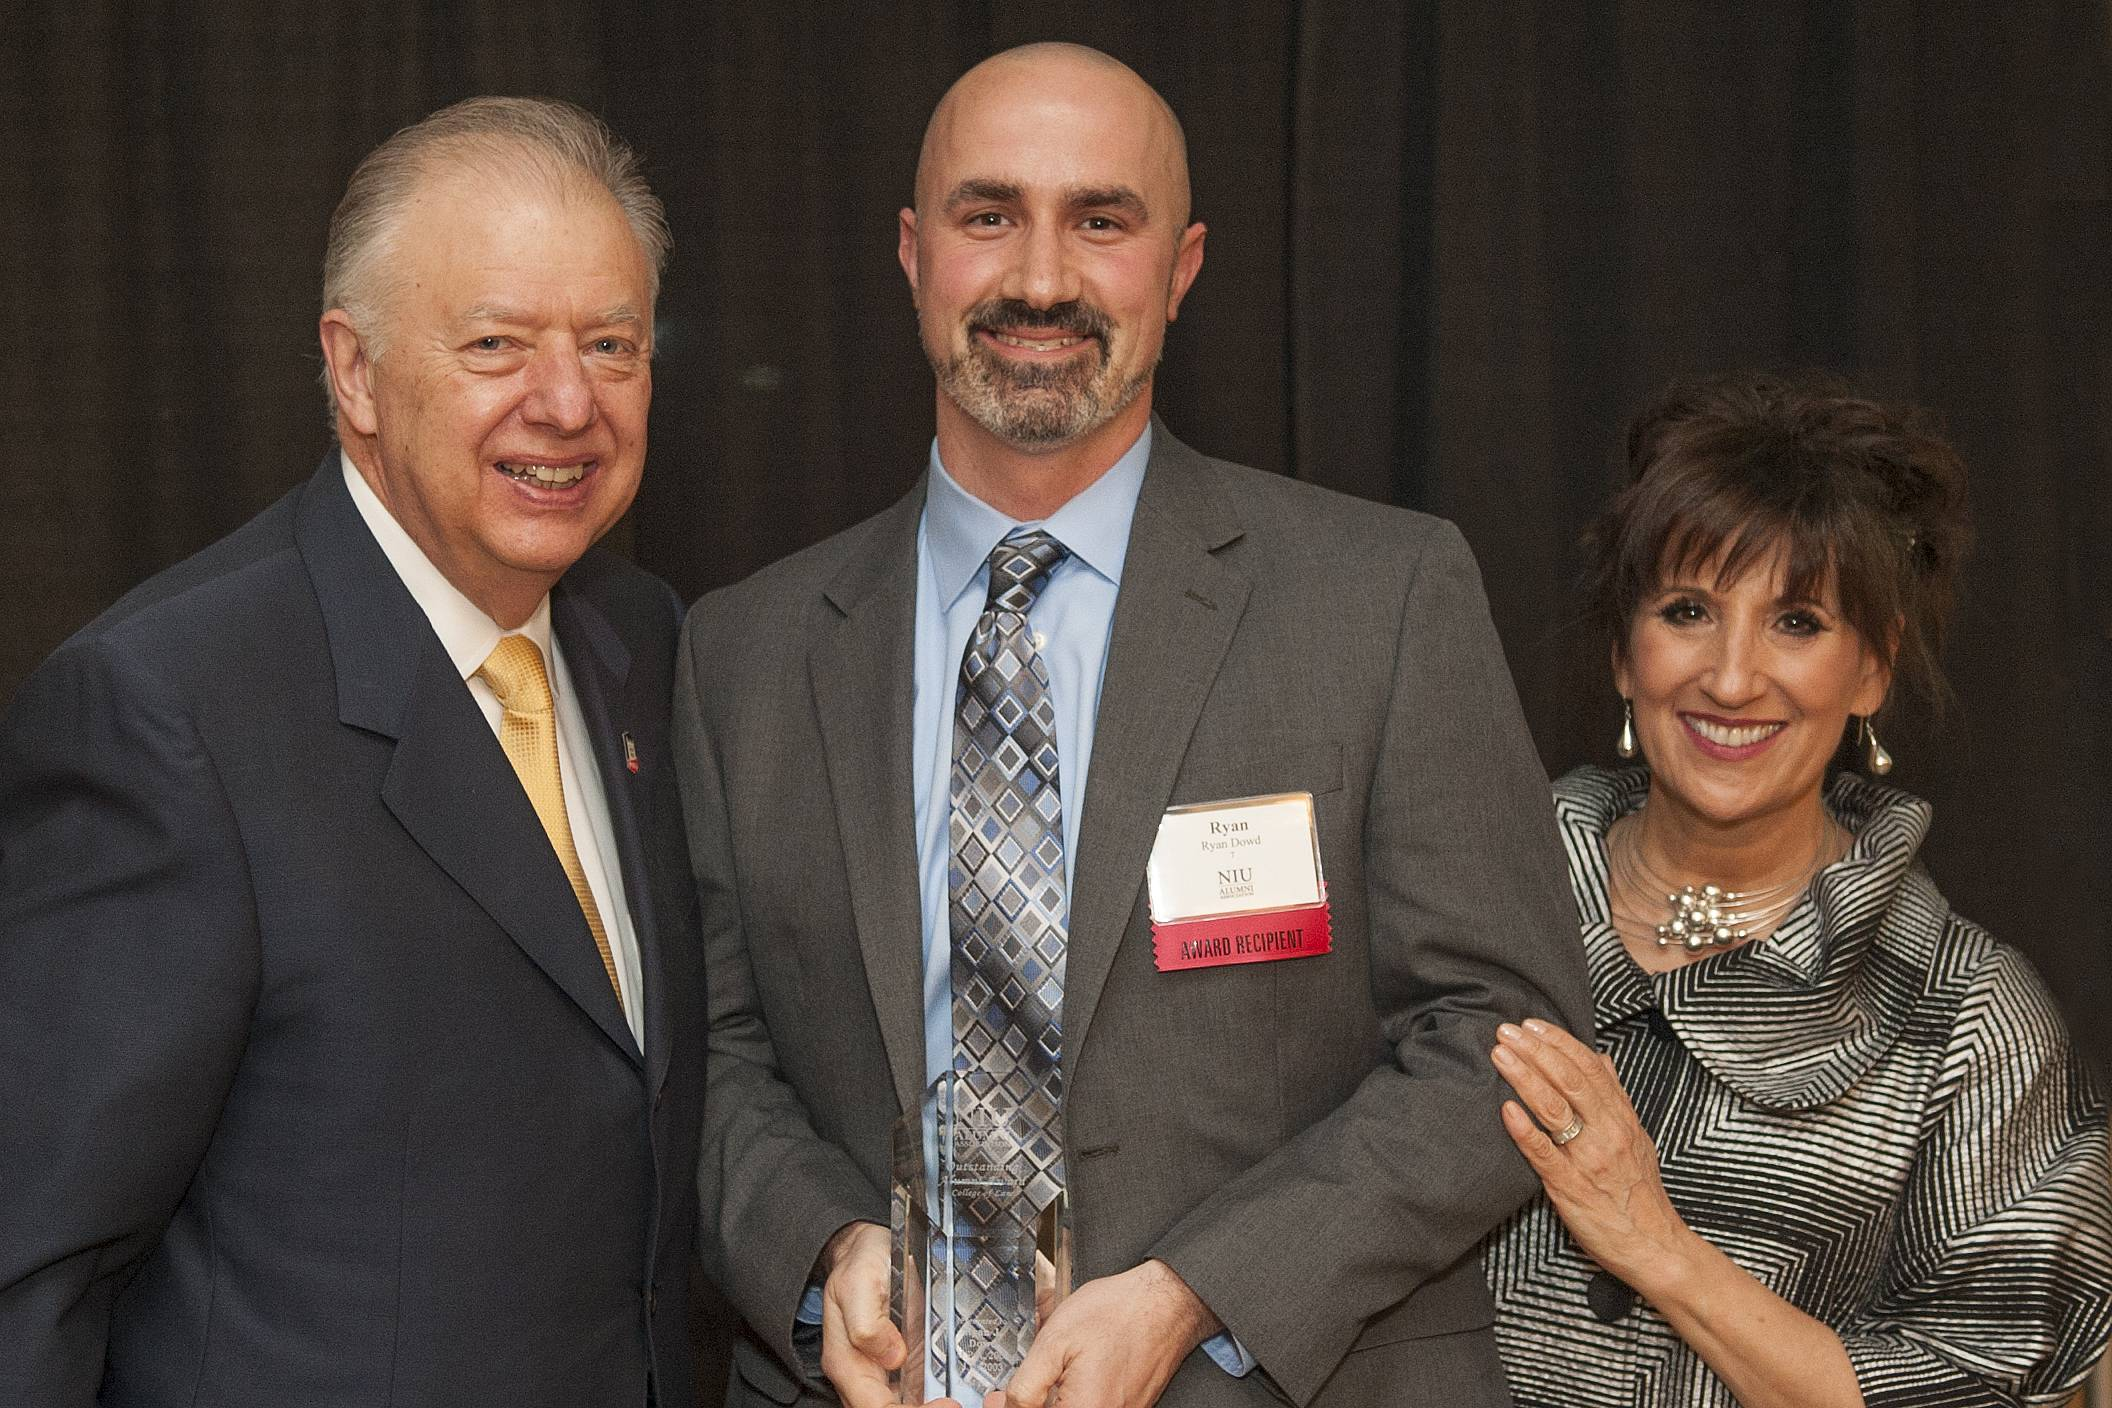 NIU Law Outstanding Alumni Award recipient Ryan Dowd ('03) is pictured (center) with NIU President John G. Peters and Francine Pepitone, President of the NIU Alumni Association Board of Directors during the 2013 NIU Alumni Association Awards Program.